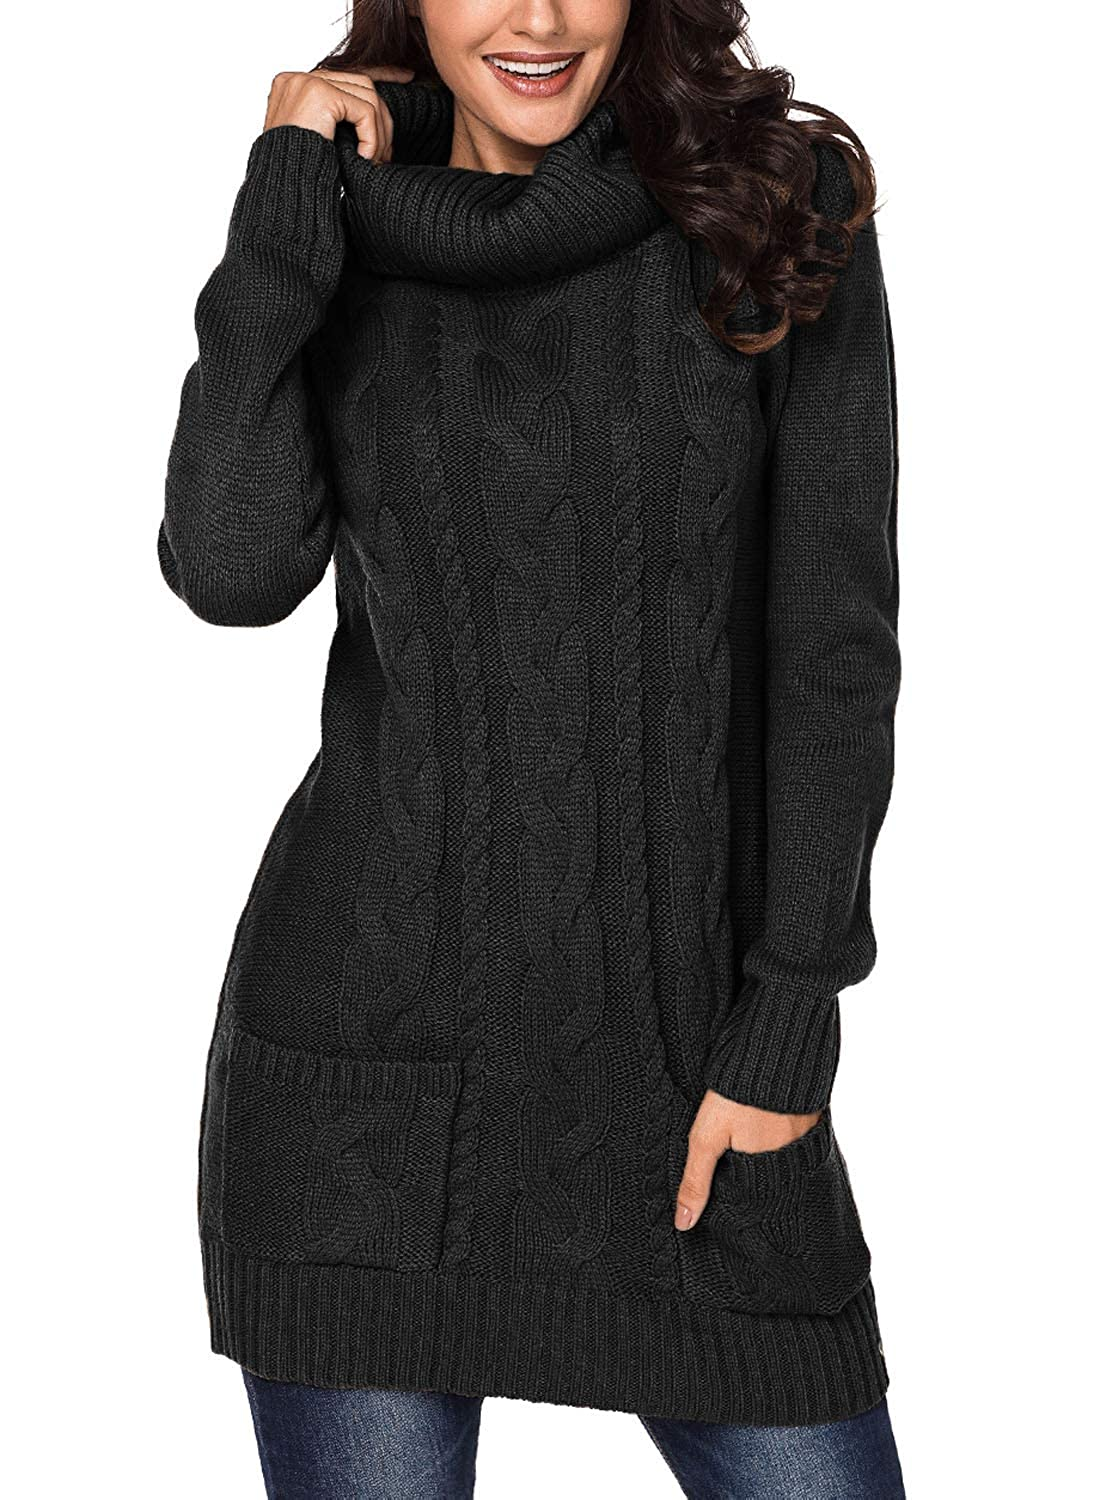 7d80d049494 100%Acrylic The Cowl Neck Is Stylish And Warm To Protect Your Neck From  Cold Slim Fit Cable Knit Body Hits At Mid Thigh